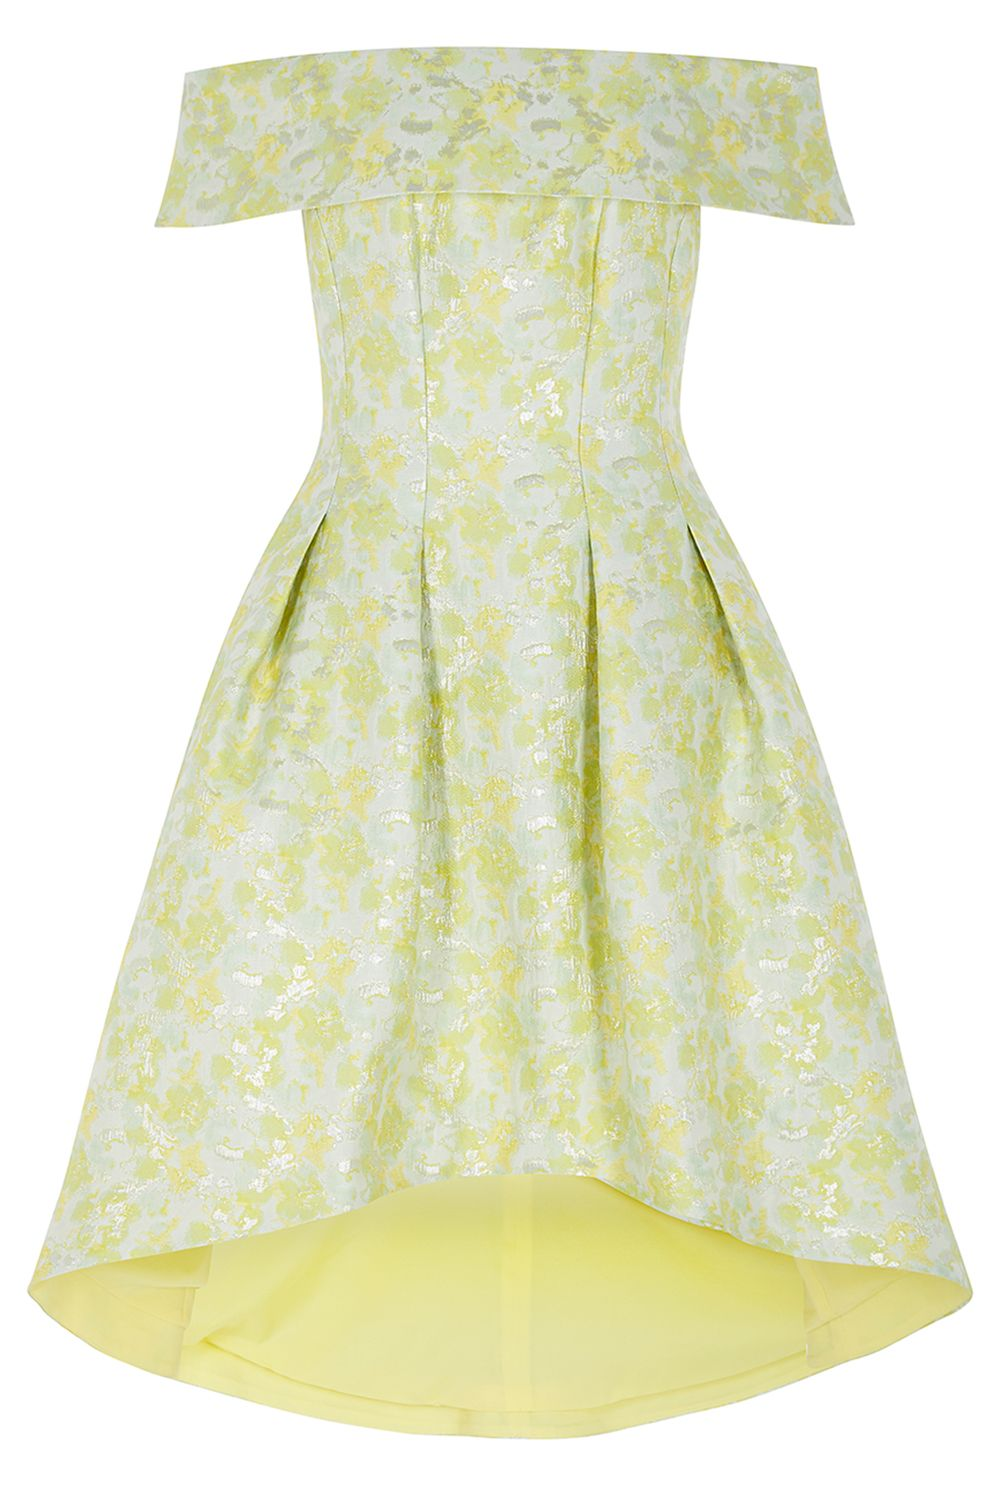 Coast Alba Jacquard Bardot Dress, Multi-Coloured